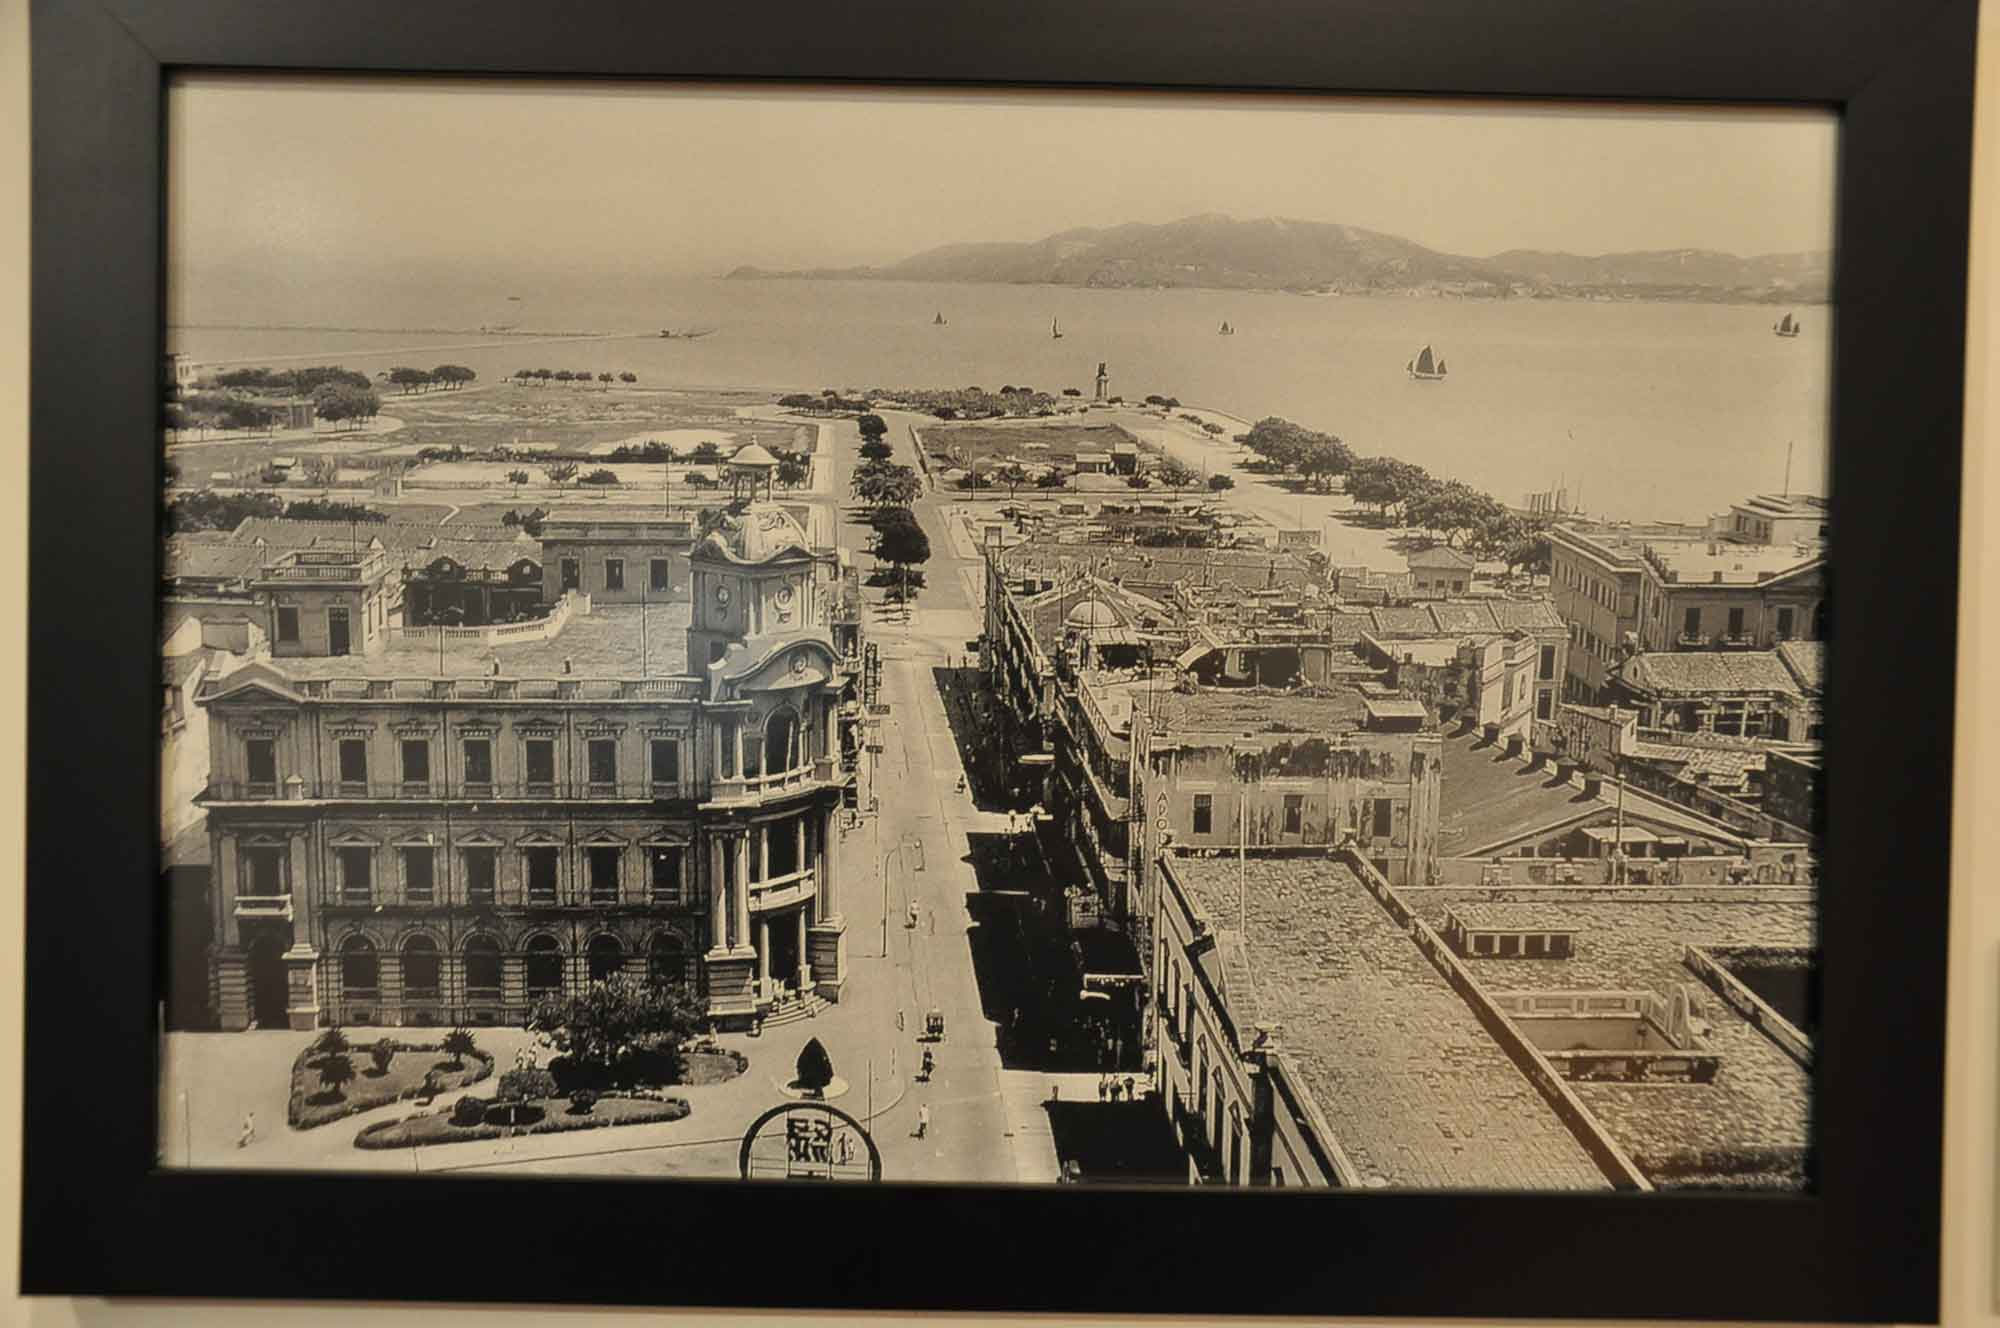 Old Macau before the Lisboa